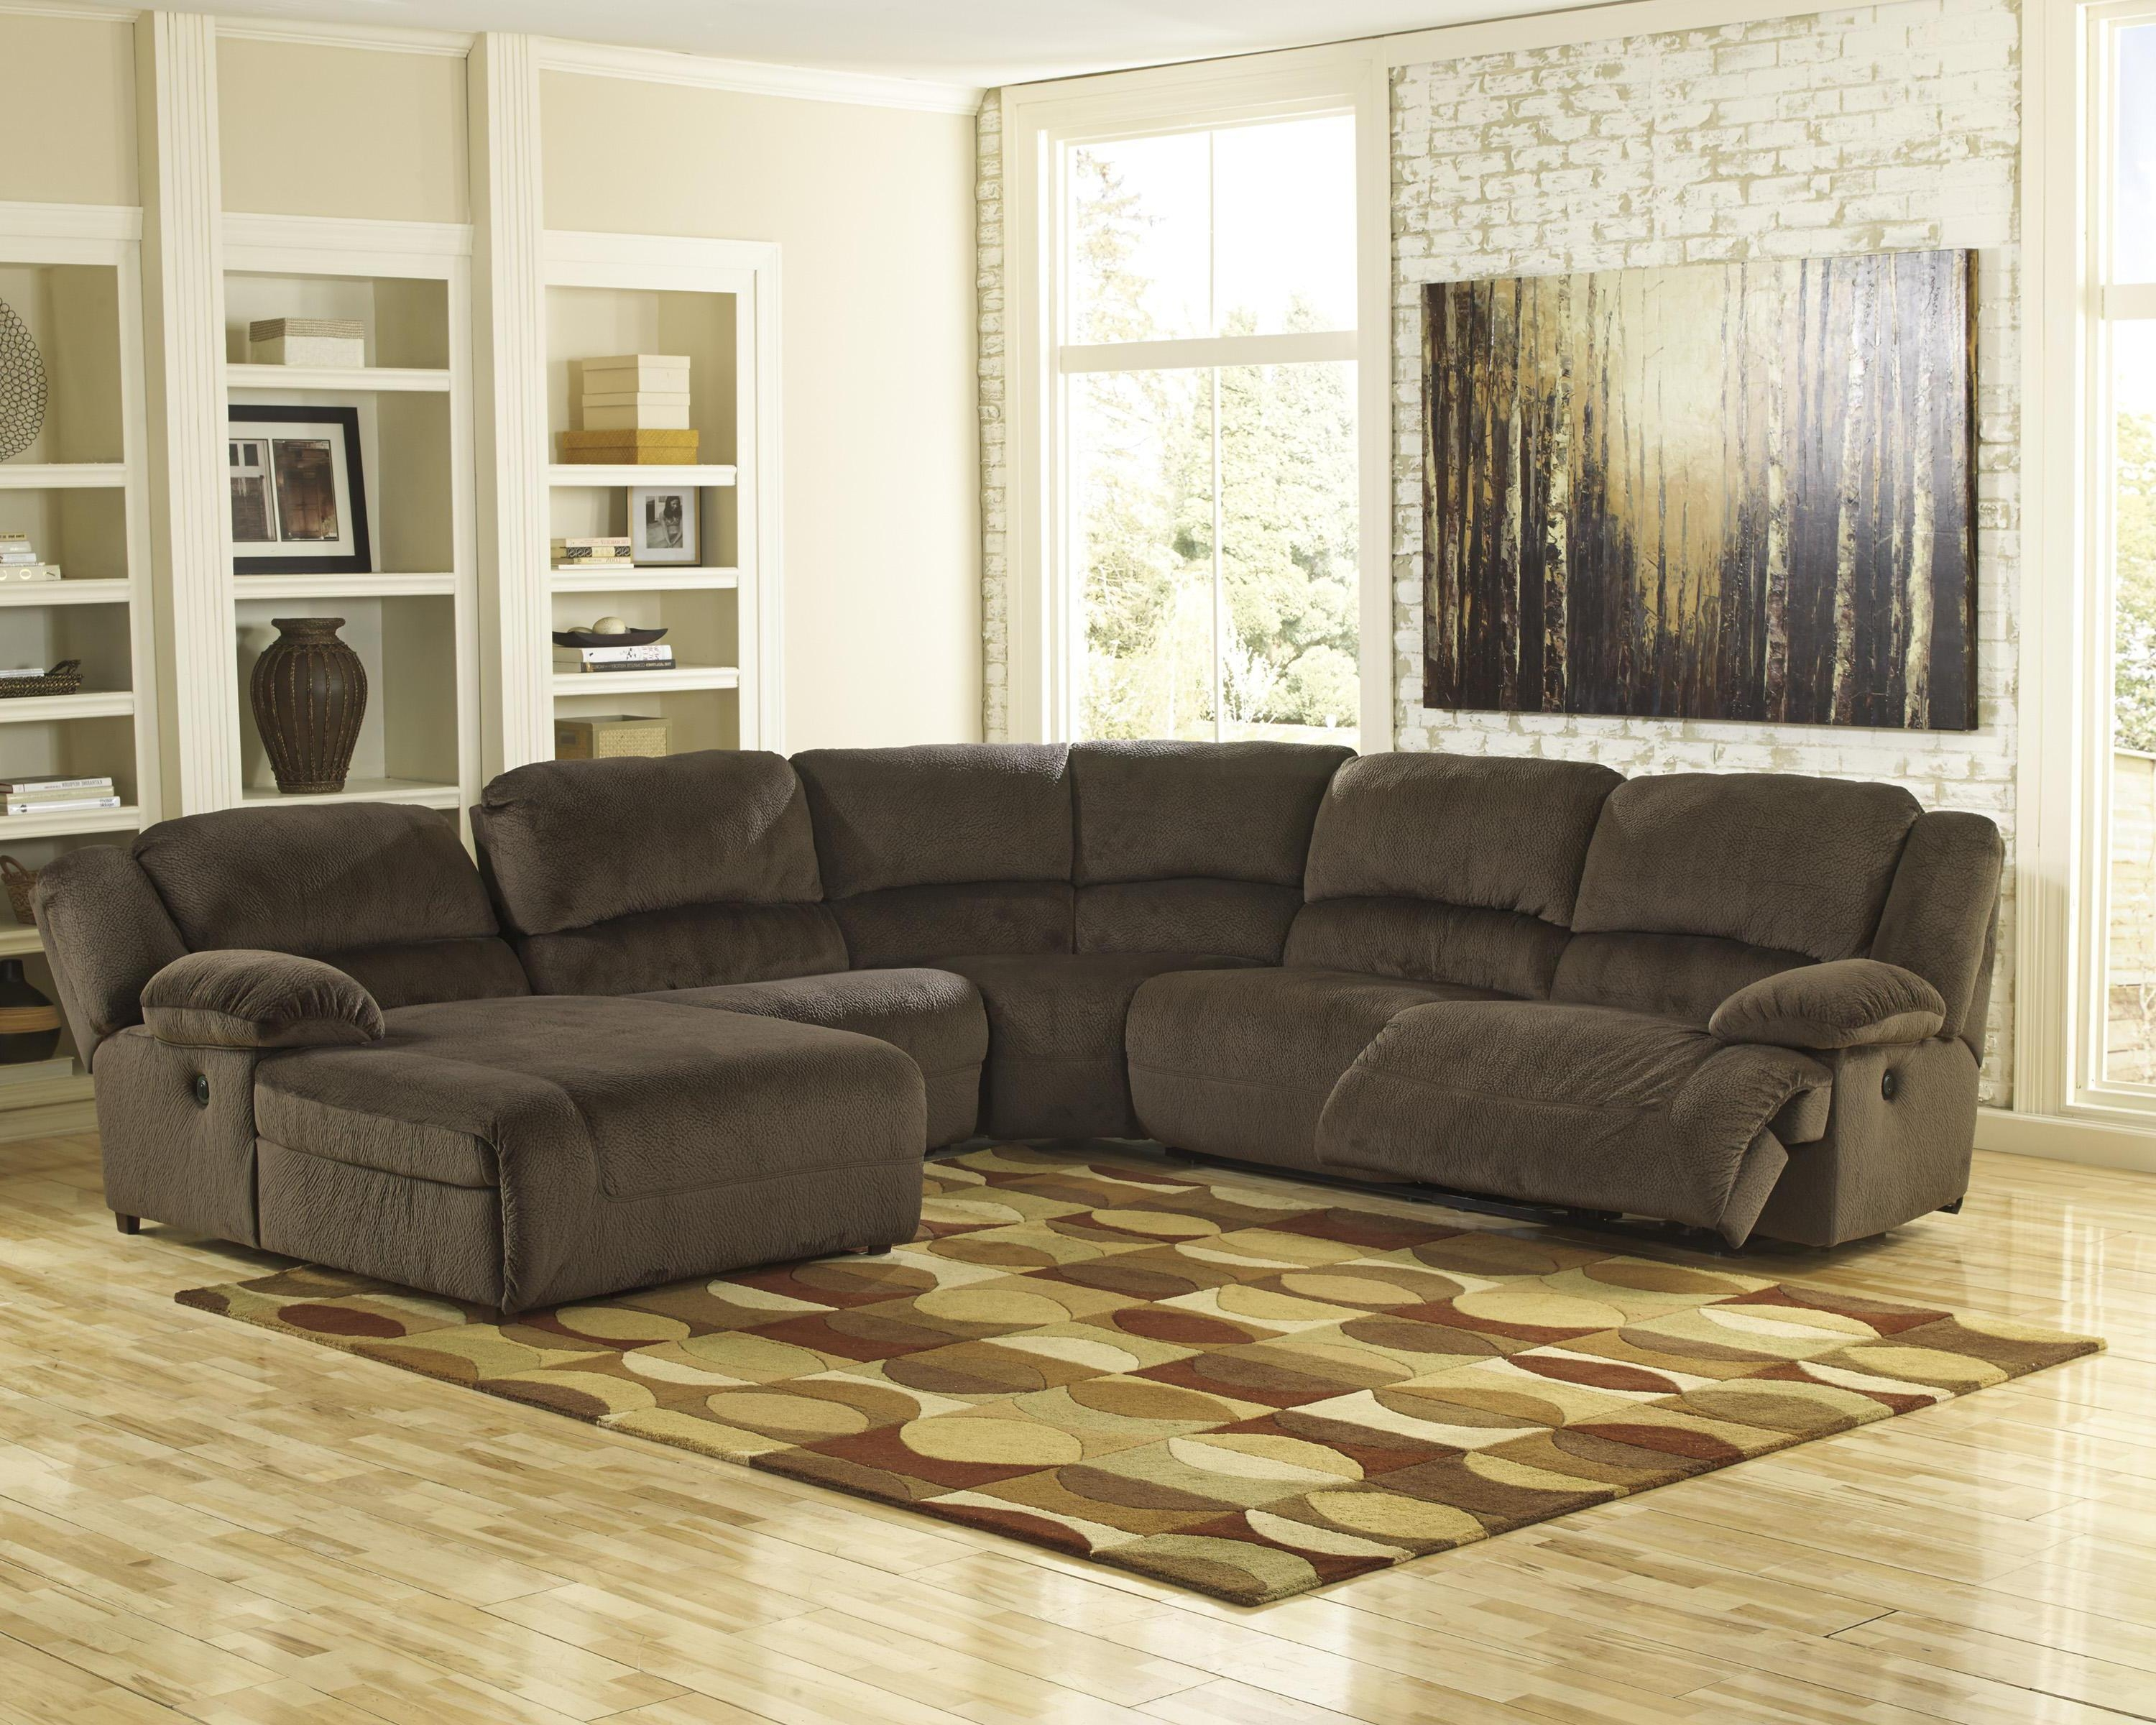 Shop Sectionals | Wolf And Gardiner Wolf Furniture With Regard To Signature Design Sectional Sofas (Image 5 of 20)